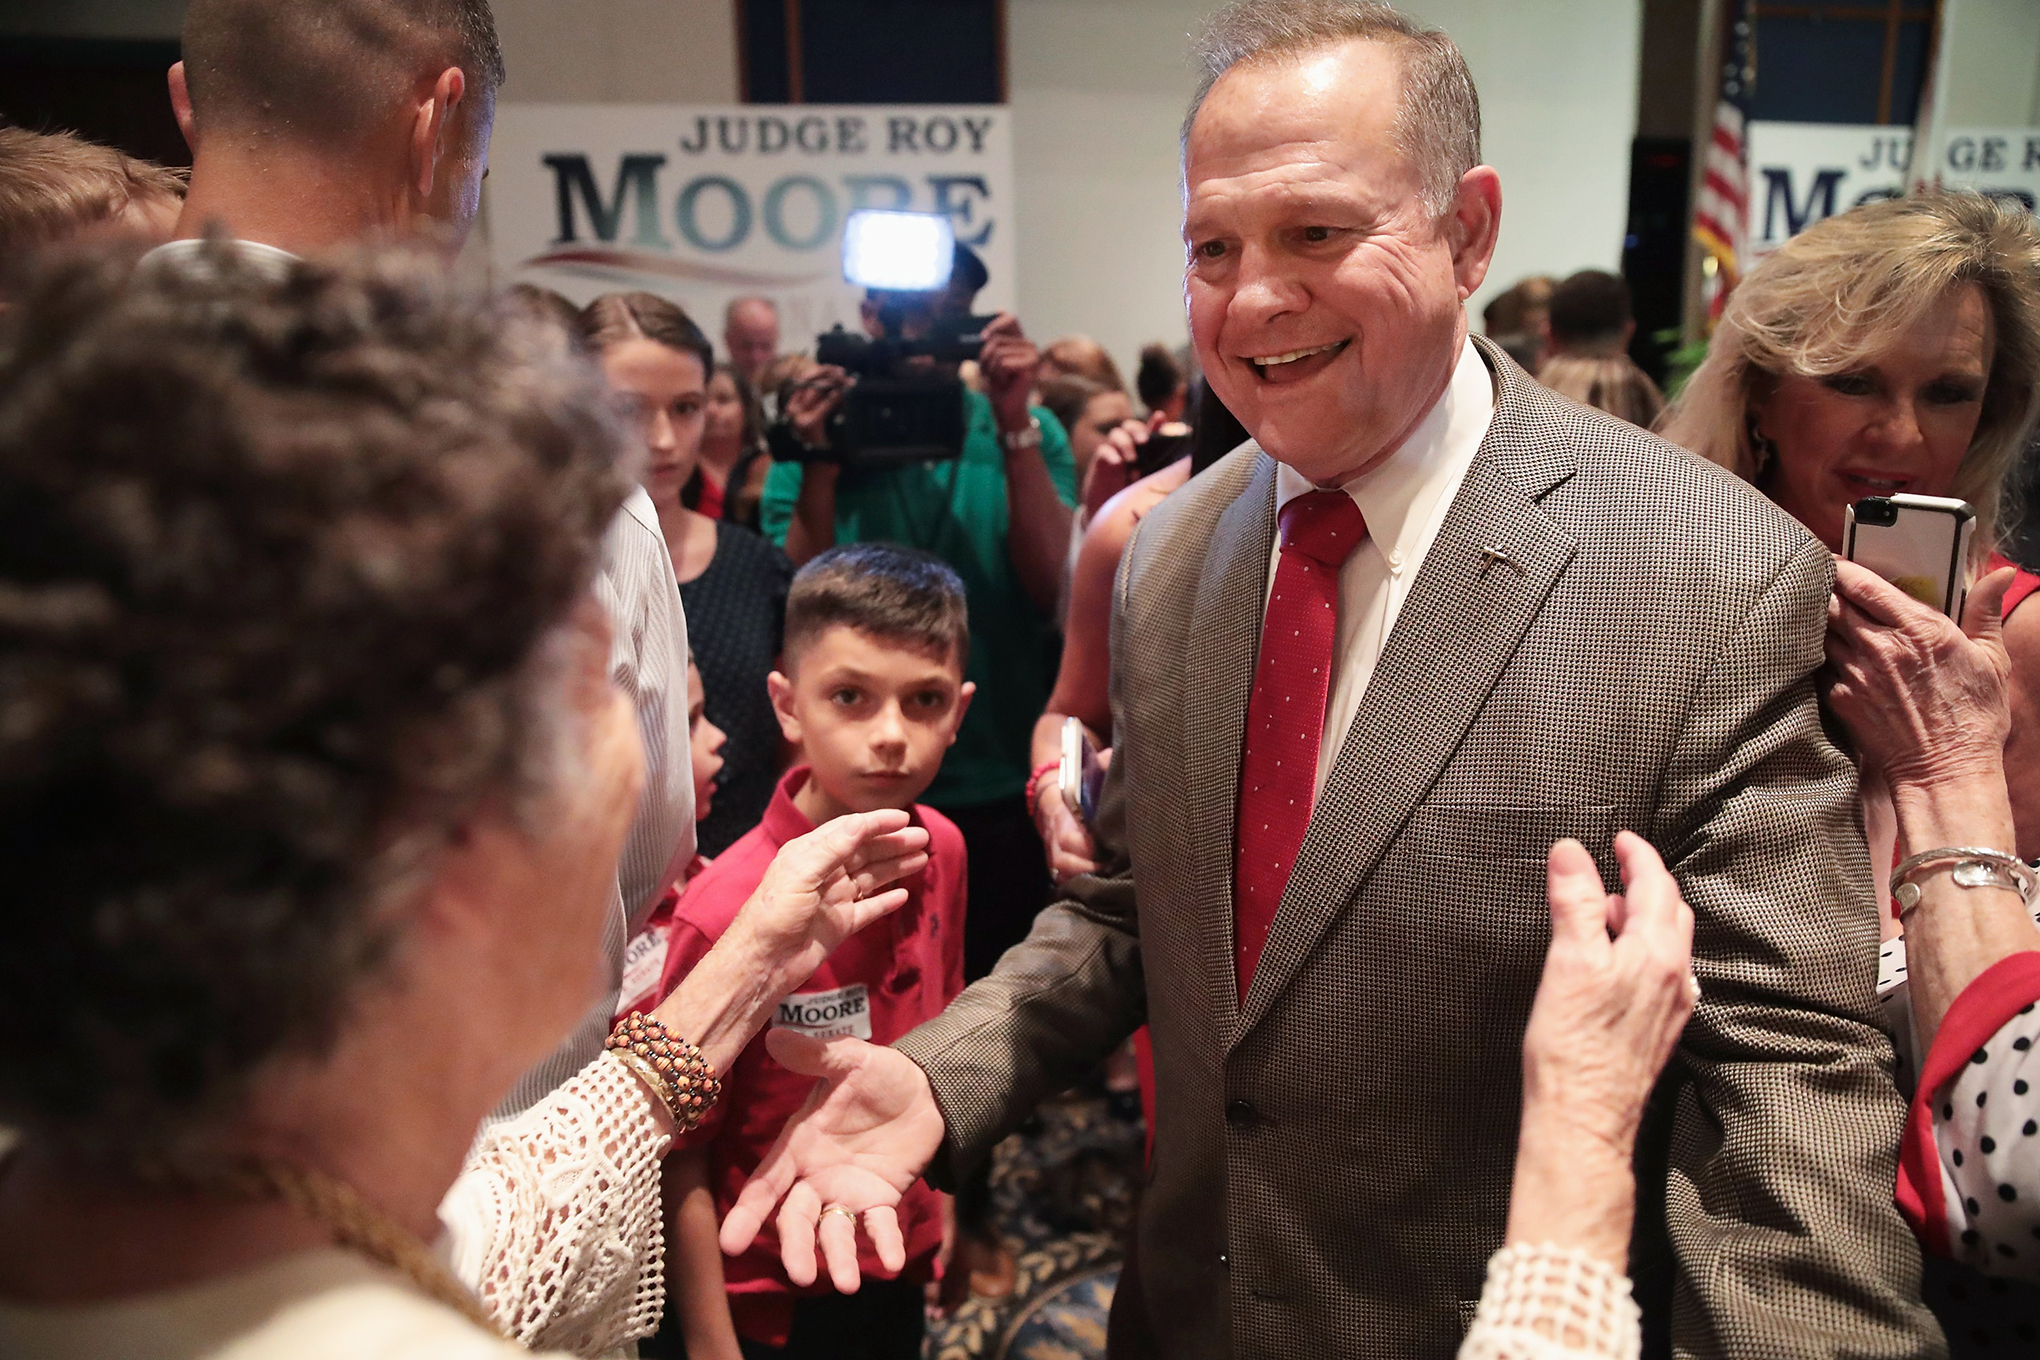 Moore greets supporters on Sept. 26 after winning the Republican primary in the special election for Alabama's open Senate seat